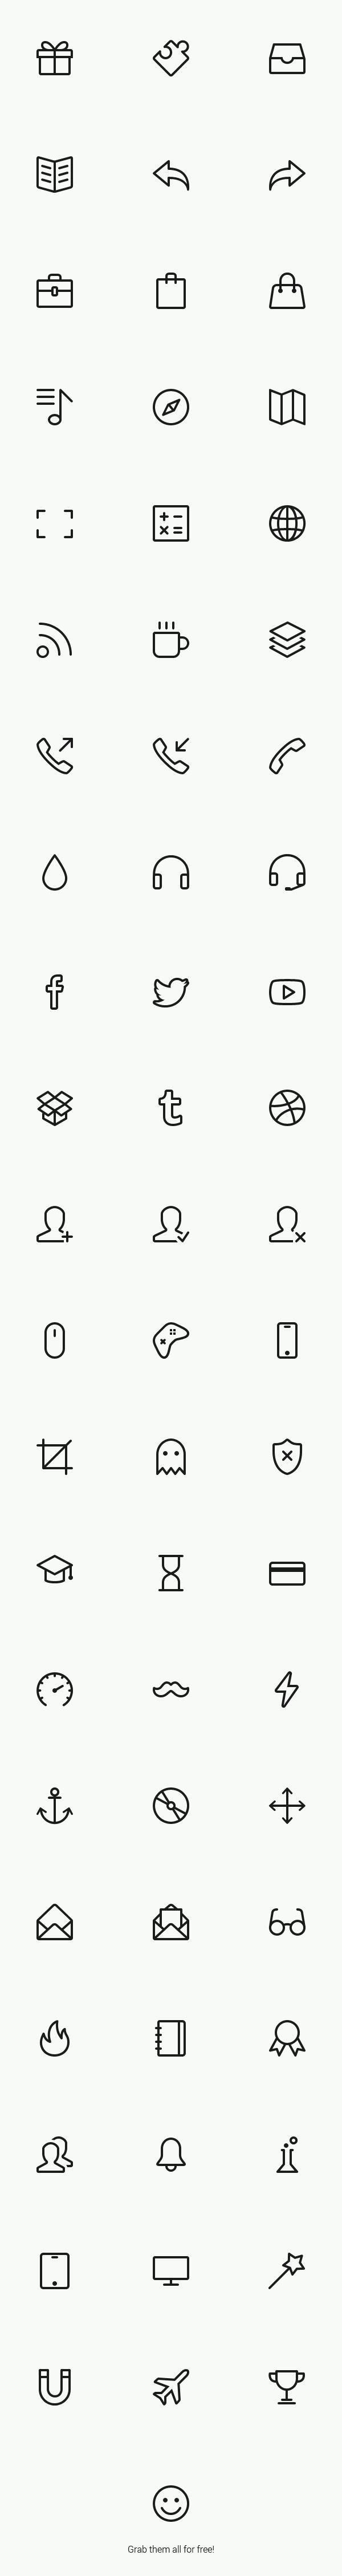 Simple Line Icons (Free PSD, Webfont) by GraphicBurger , via Behance